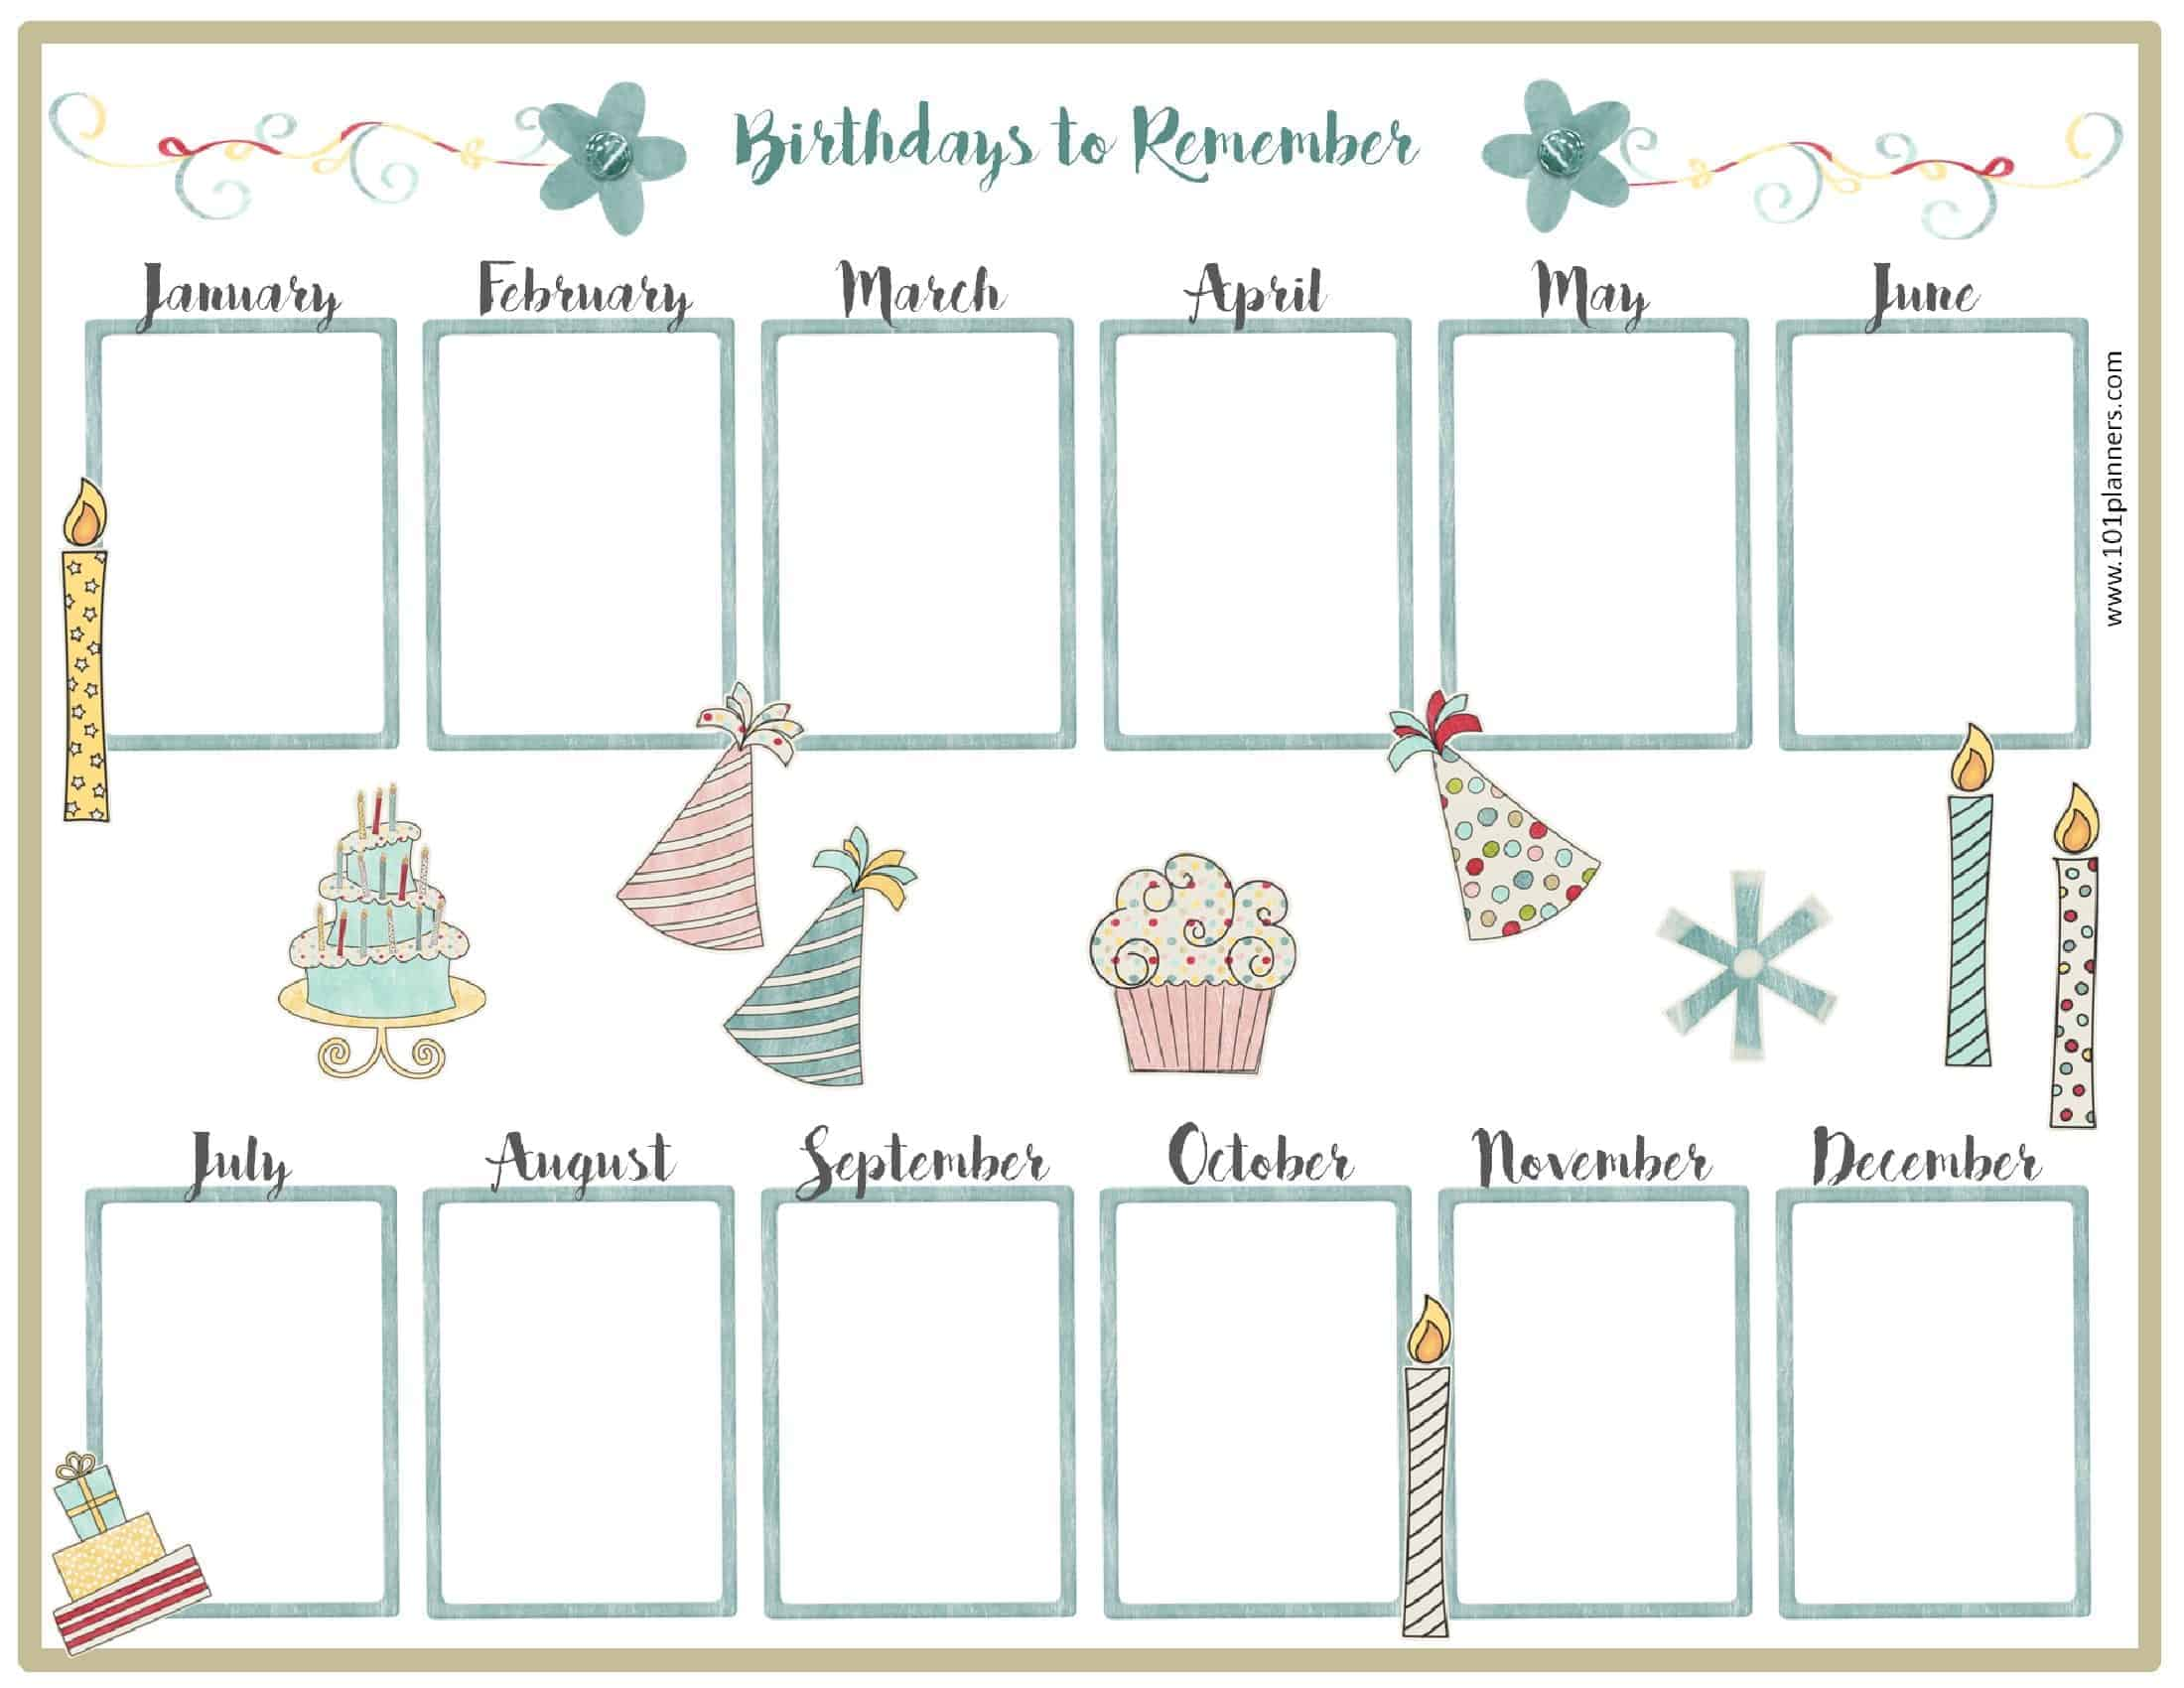 graphic regarding Free Printable Perpetual Birthday Calendar Template named Totally free Birthday Calendar Printable Customizable Lots of